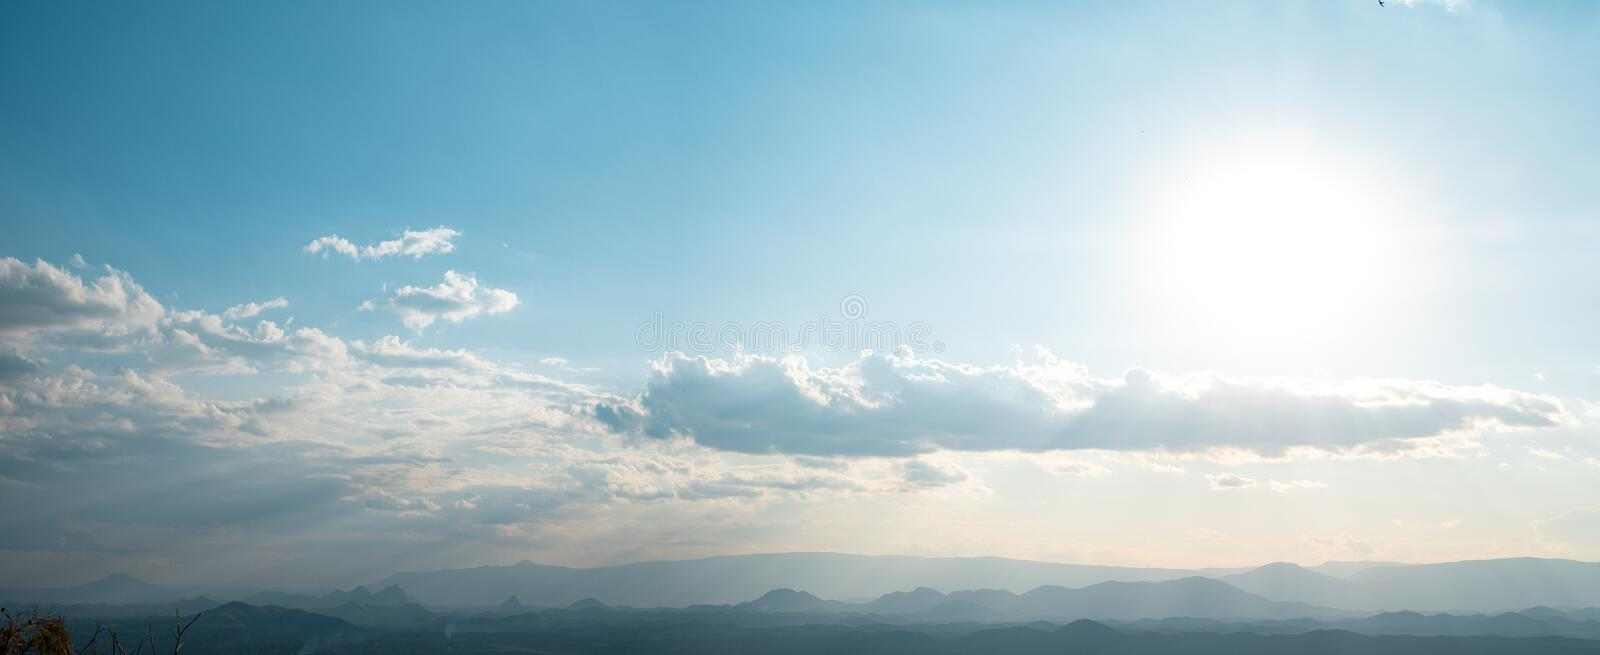 Beautiful sun sky cloud at the mountain range and the city in the background. Photo Loei  city Thailand from Phu Bo Bit mountain peak stock image